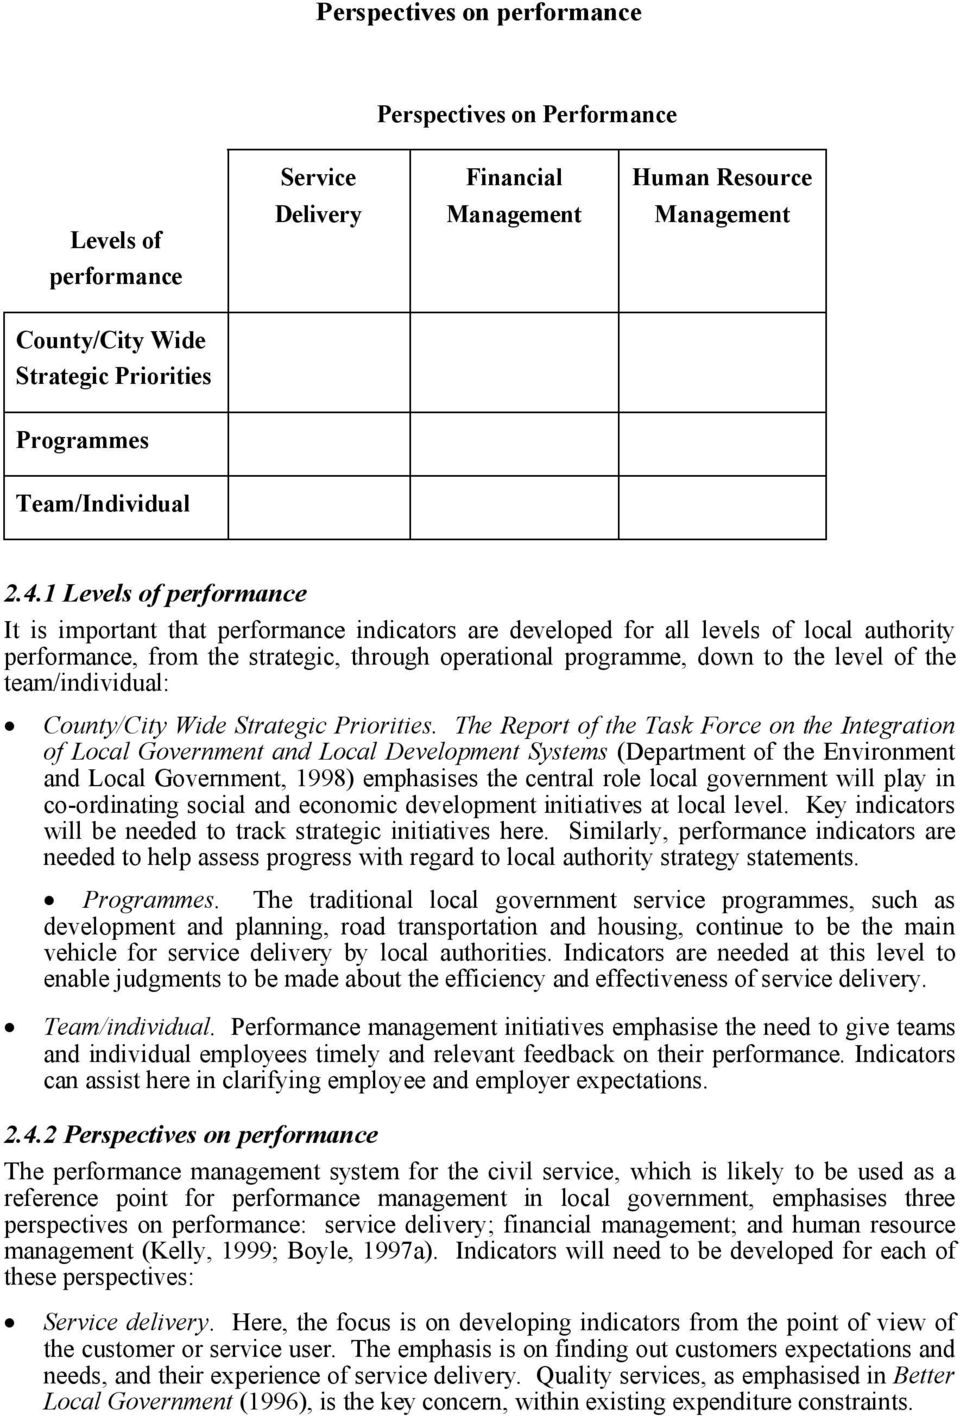 1 Levels of performance It is important that performance indicators are developed for all levels of local authority performance, from the strategic, through operational programme, down to the level